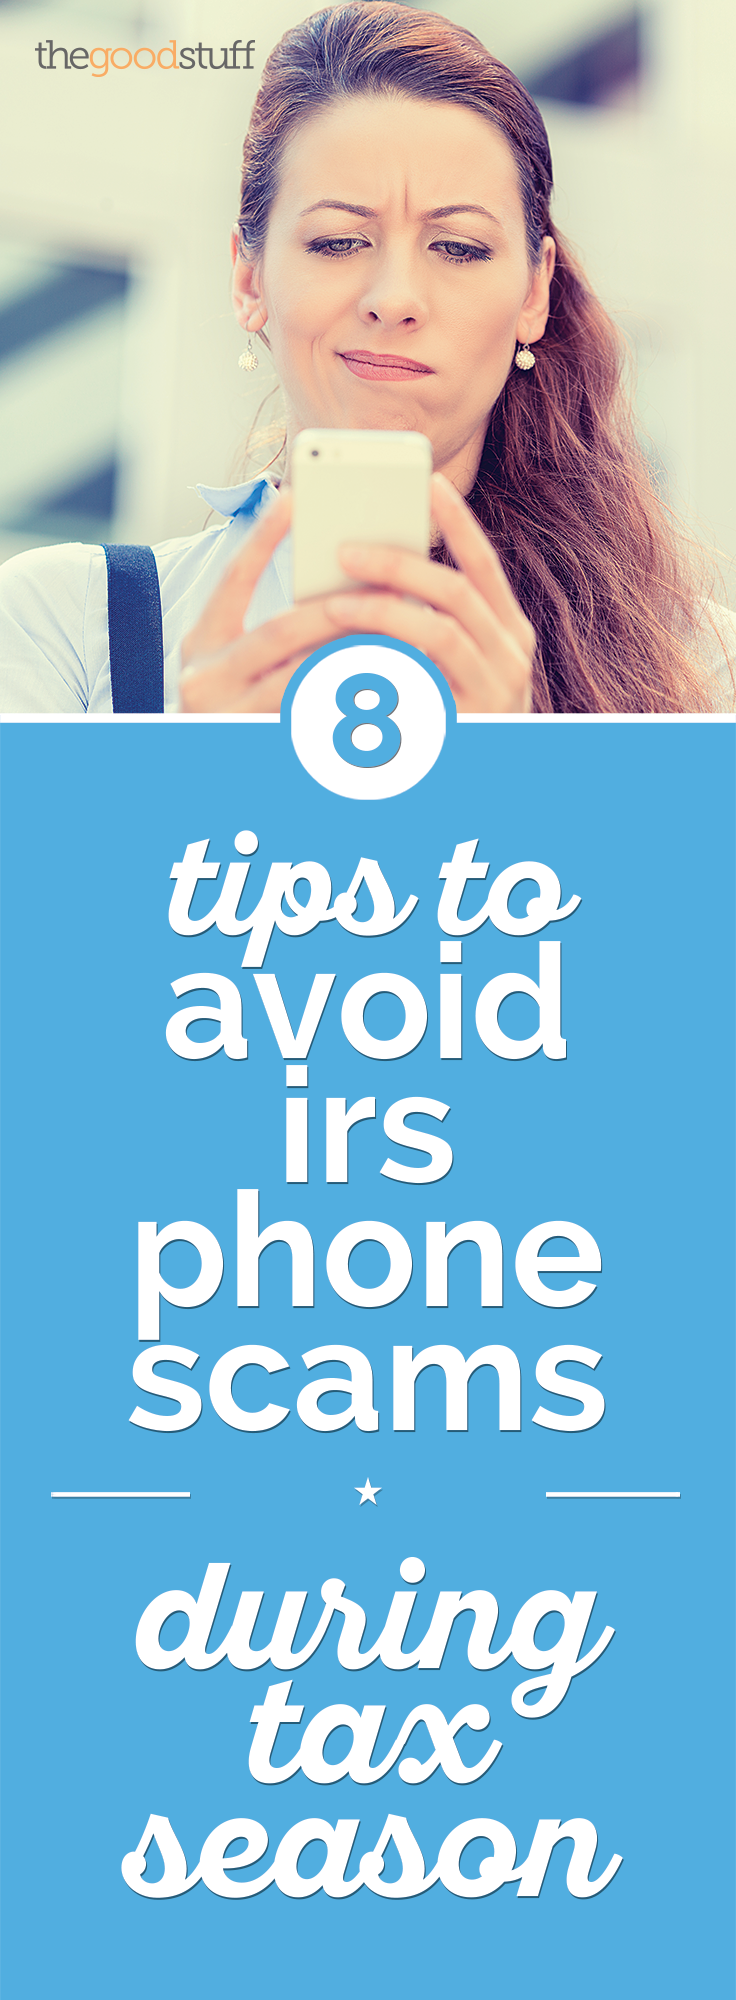 8 Tips to Avoid IRS Phone Scams During Tax Season | thegoodstuff